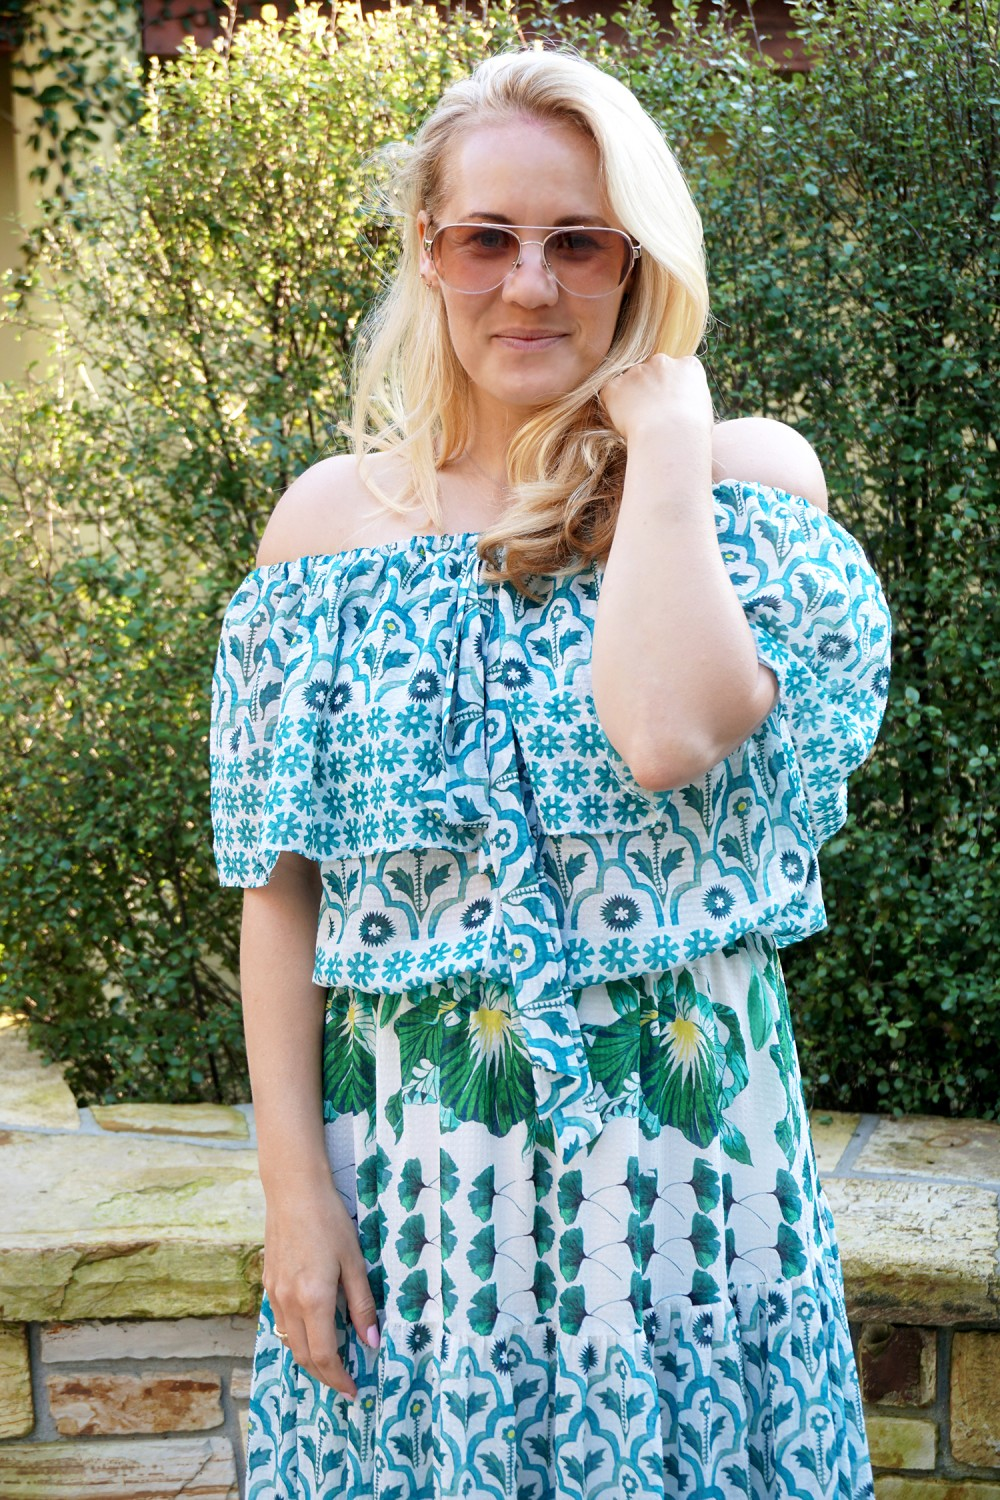 Off The Shoulder Maxi Dress-Temperley London-Outfit Inspiration-Wine Tasting-Visit Carmel by the Sea-Have Need Want 7